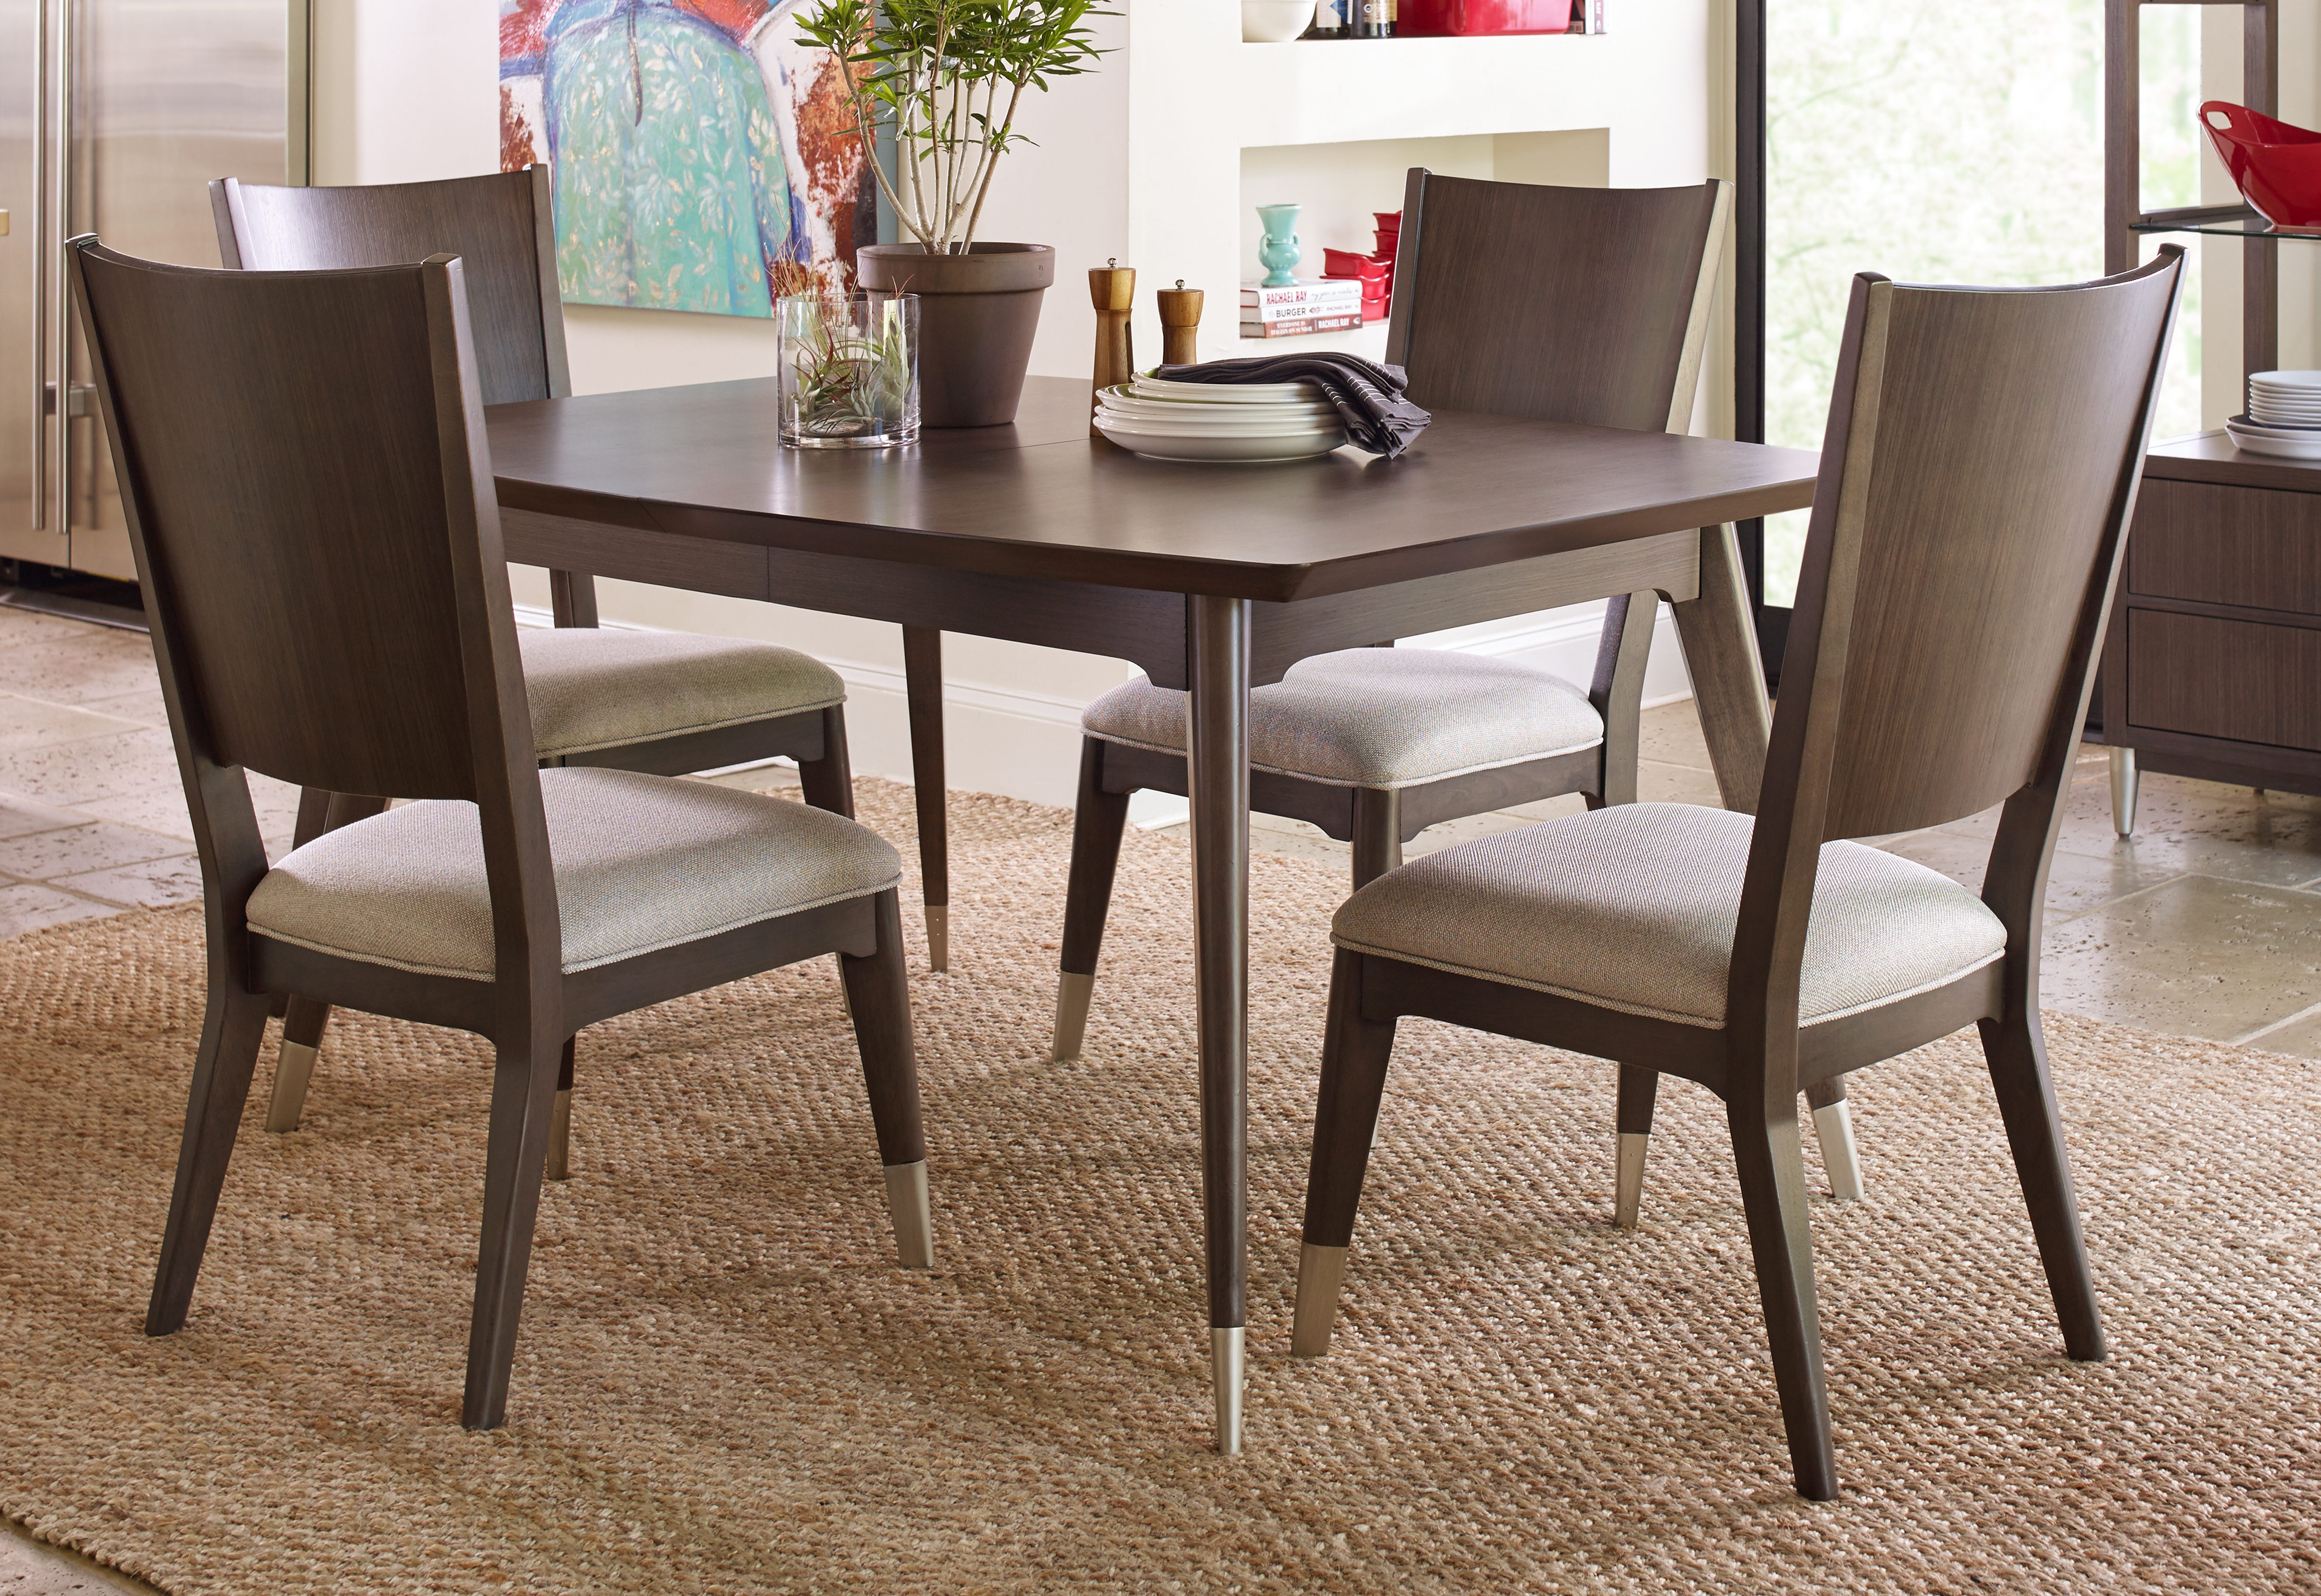 Marvelous Legacy Furniture Soho By Rachael Ray Ash Shaped 5Pc Dining Bralicious Painted Fabric Chair Ideas Braliciousco